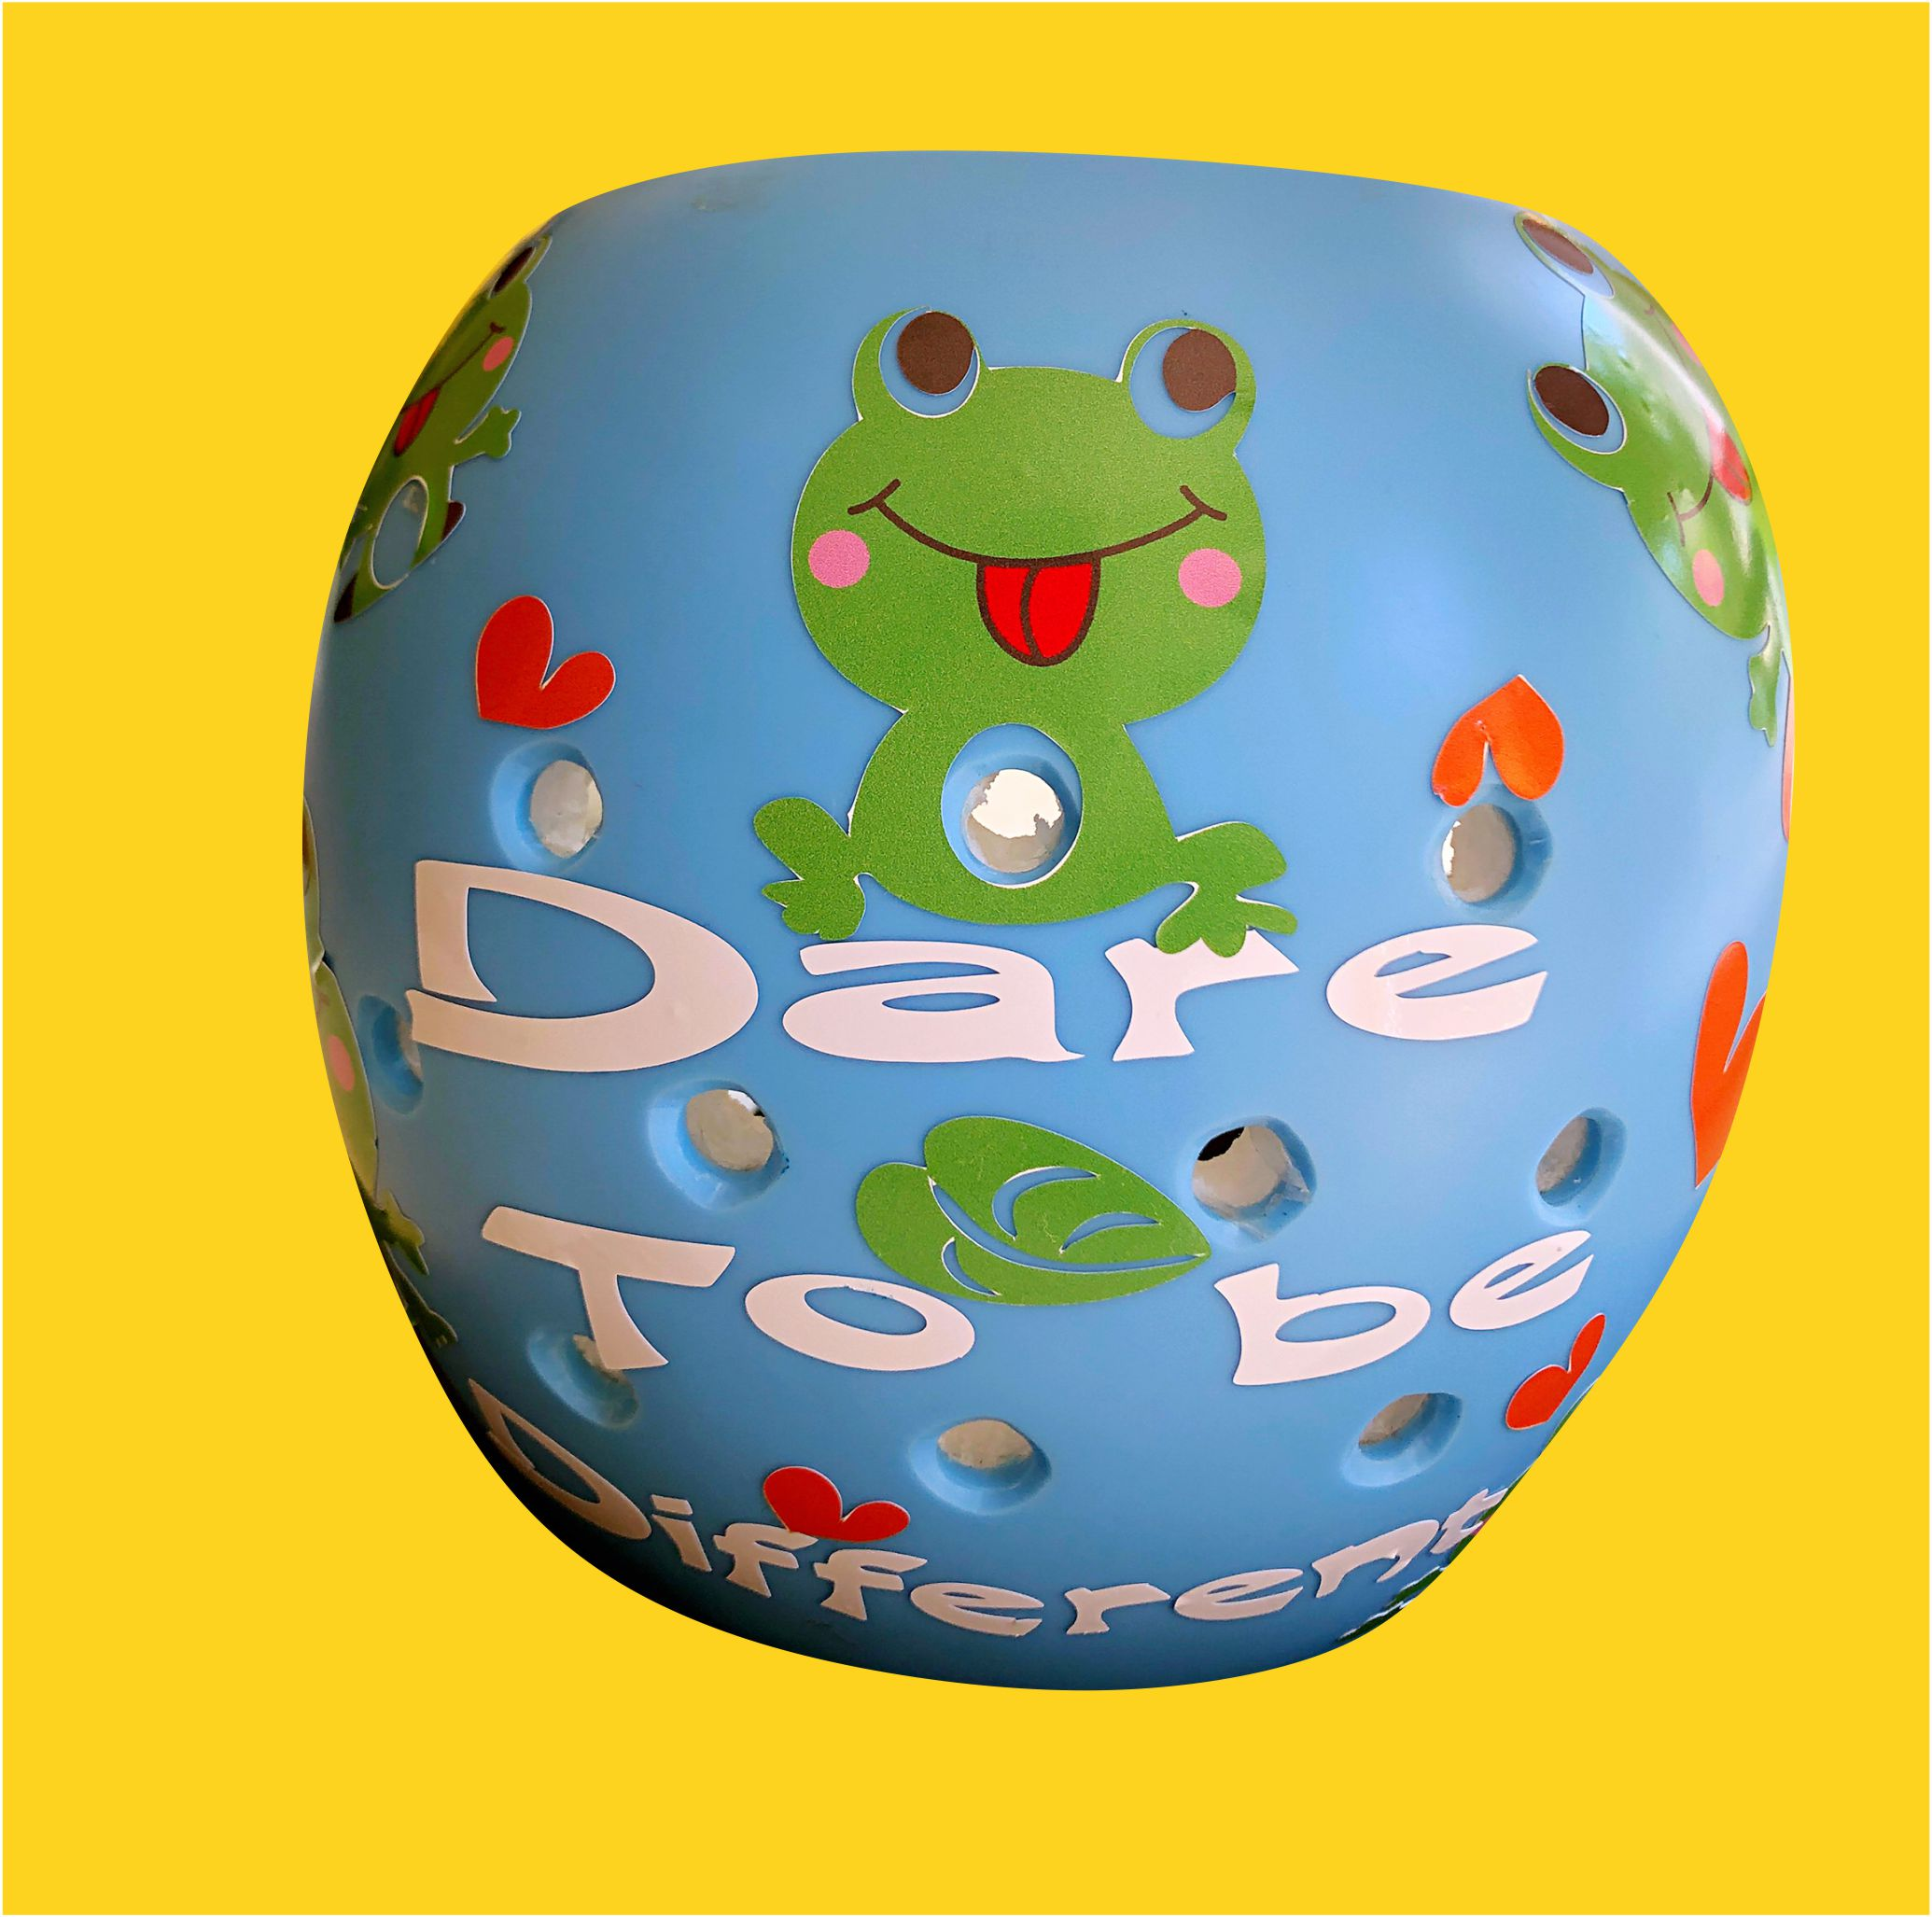 Dare to be different cranial band